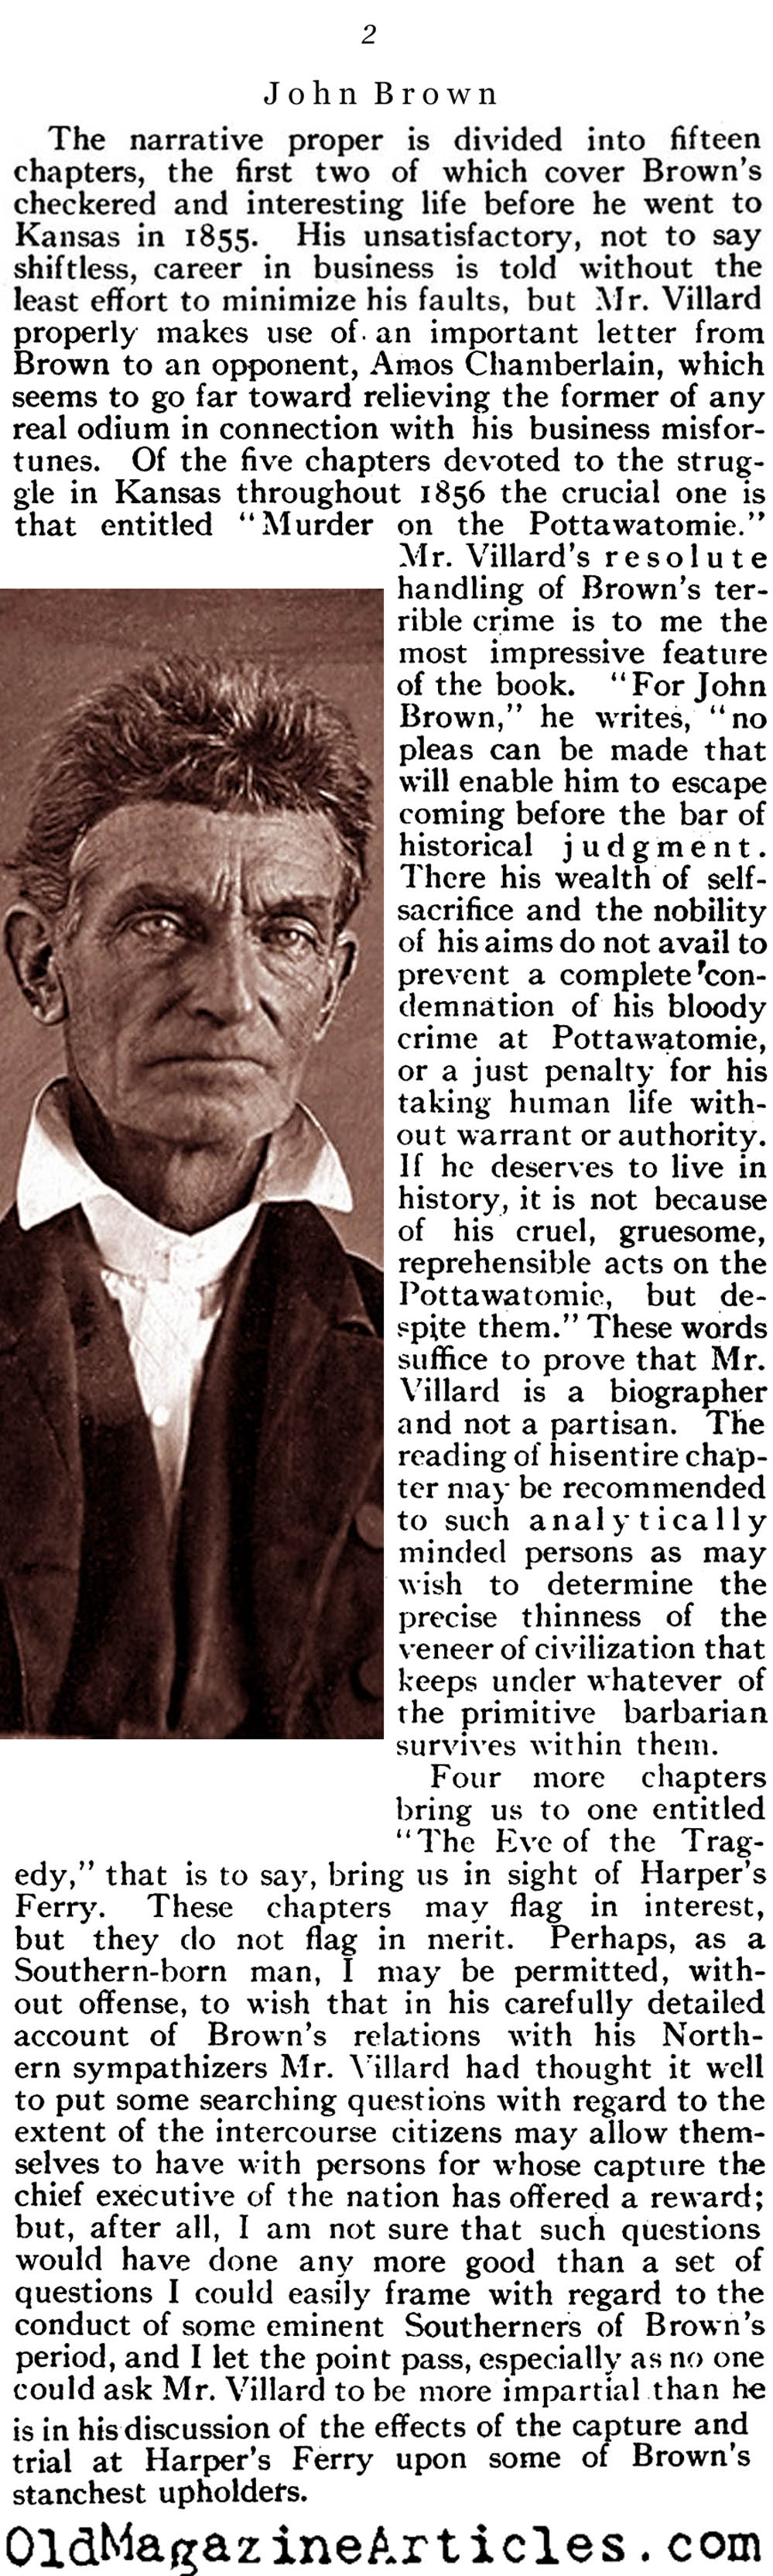 John Brown Examined (The North American Review, 1910)